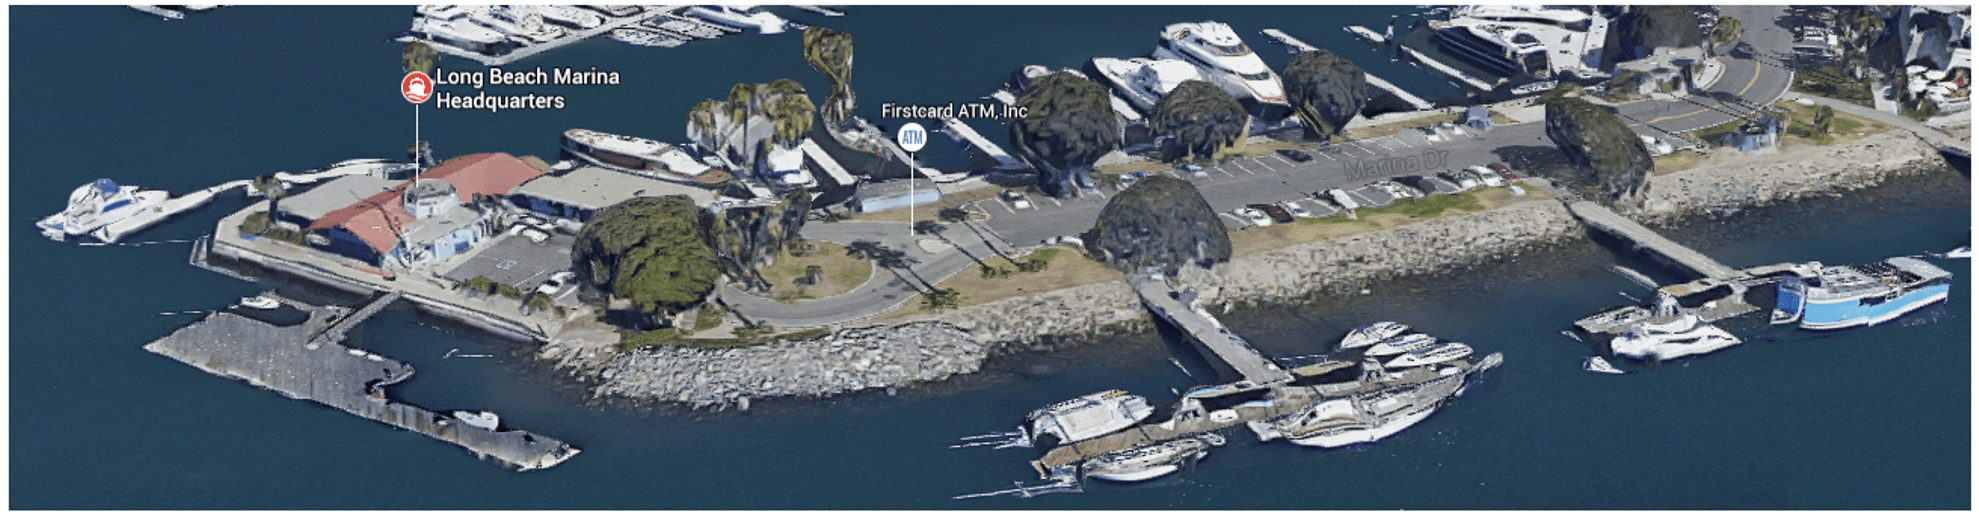 Alamitos Bay Marina - Long Beach Marinas